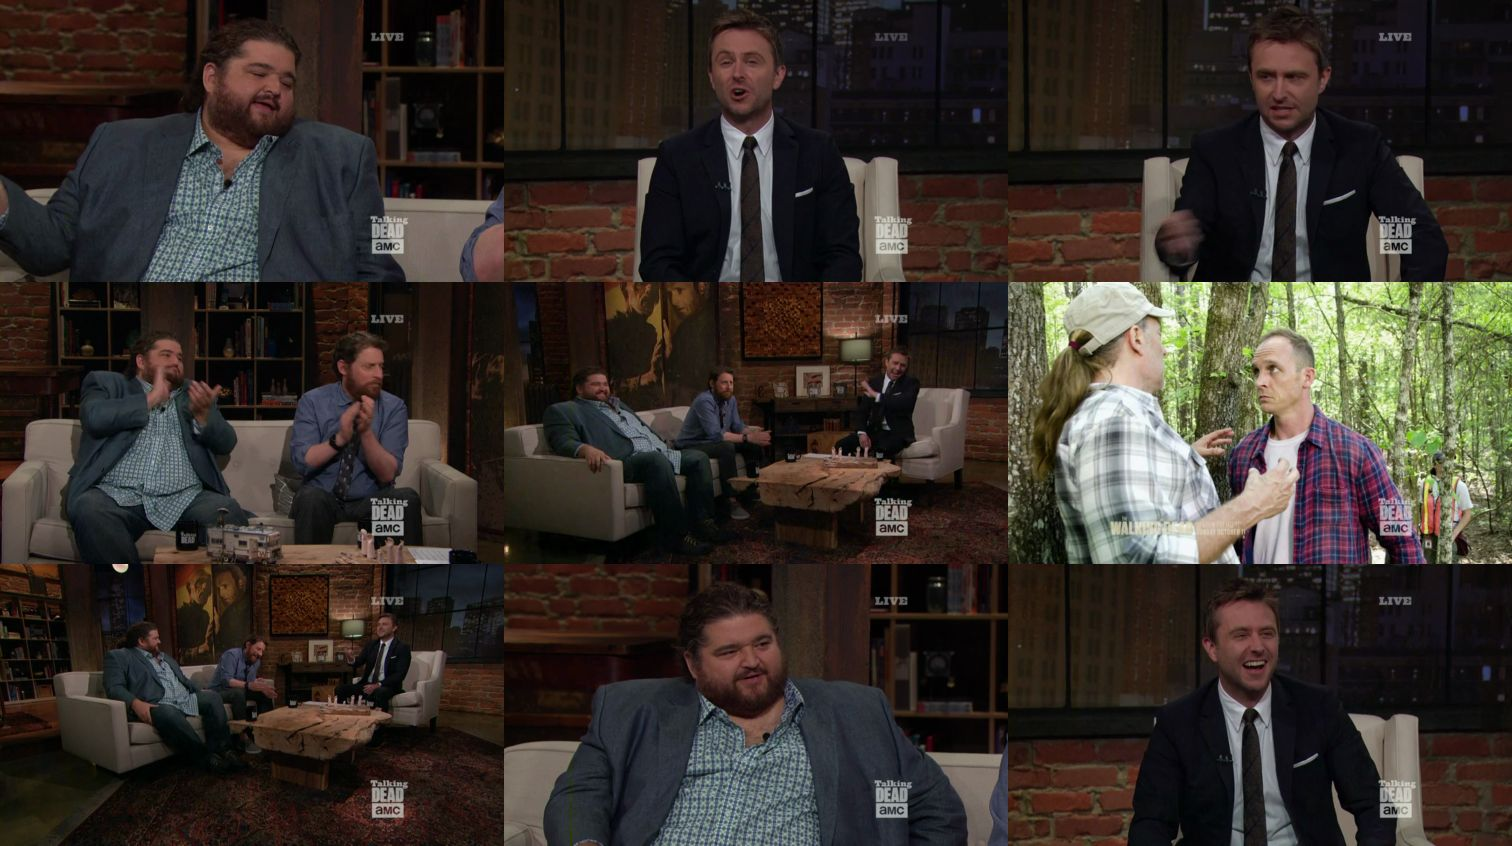 Talking Dead S05E00 Season 6 Preview Special HDTV x264-BATV  [MP4+ MKV 720P]